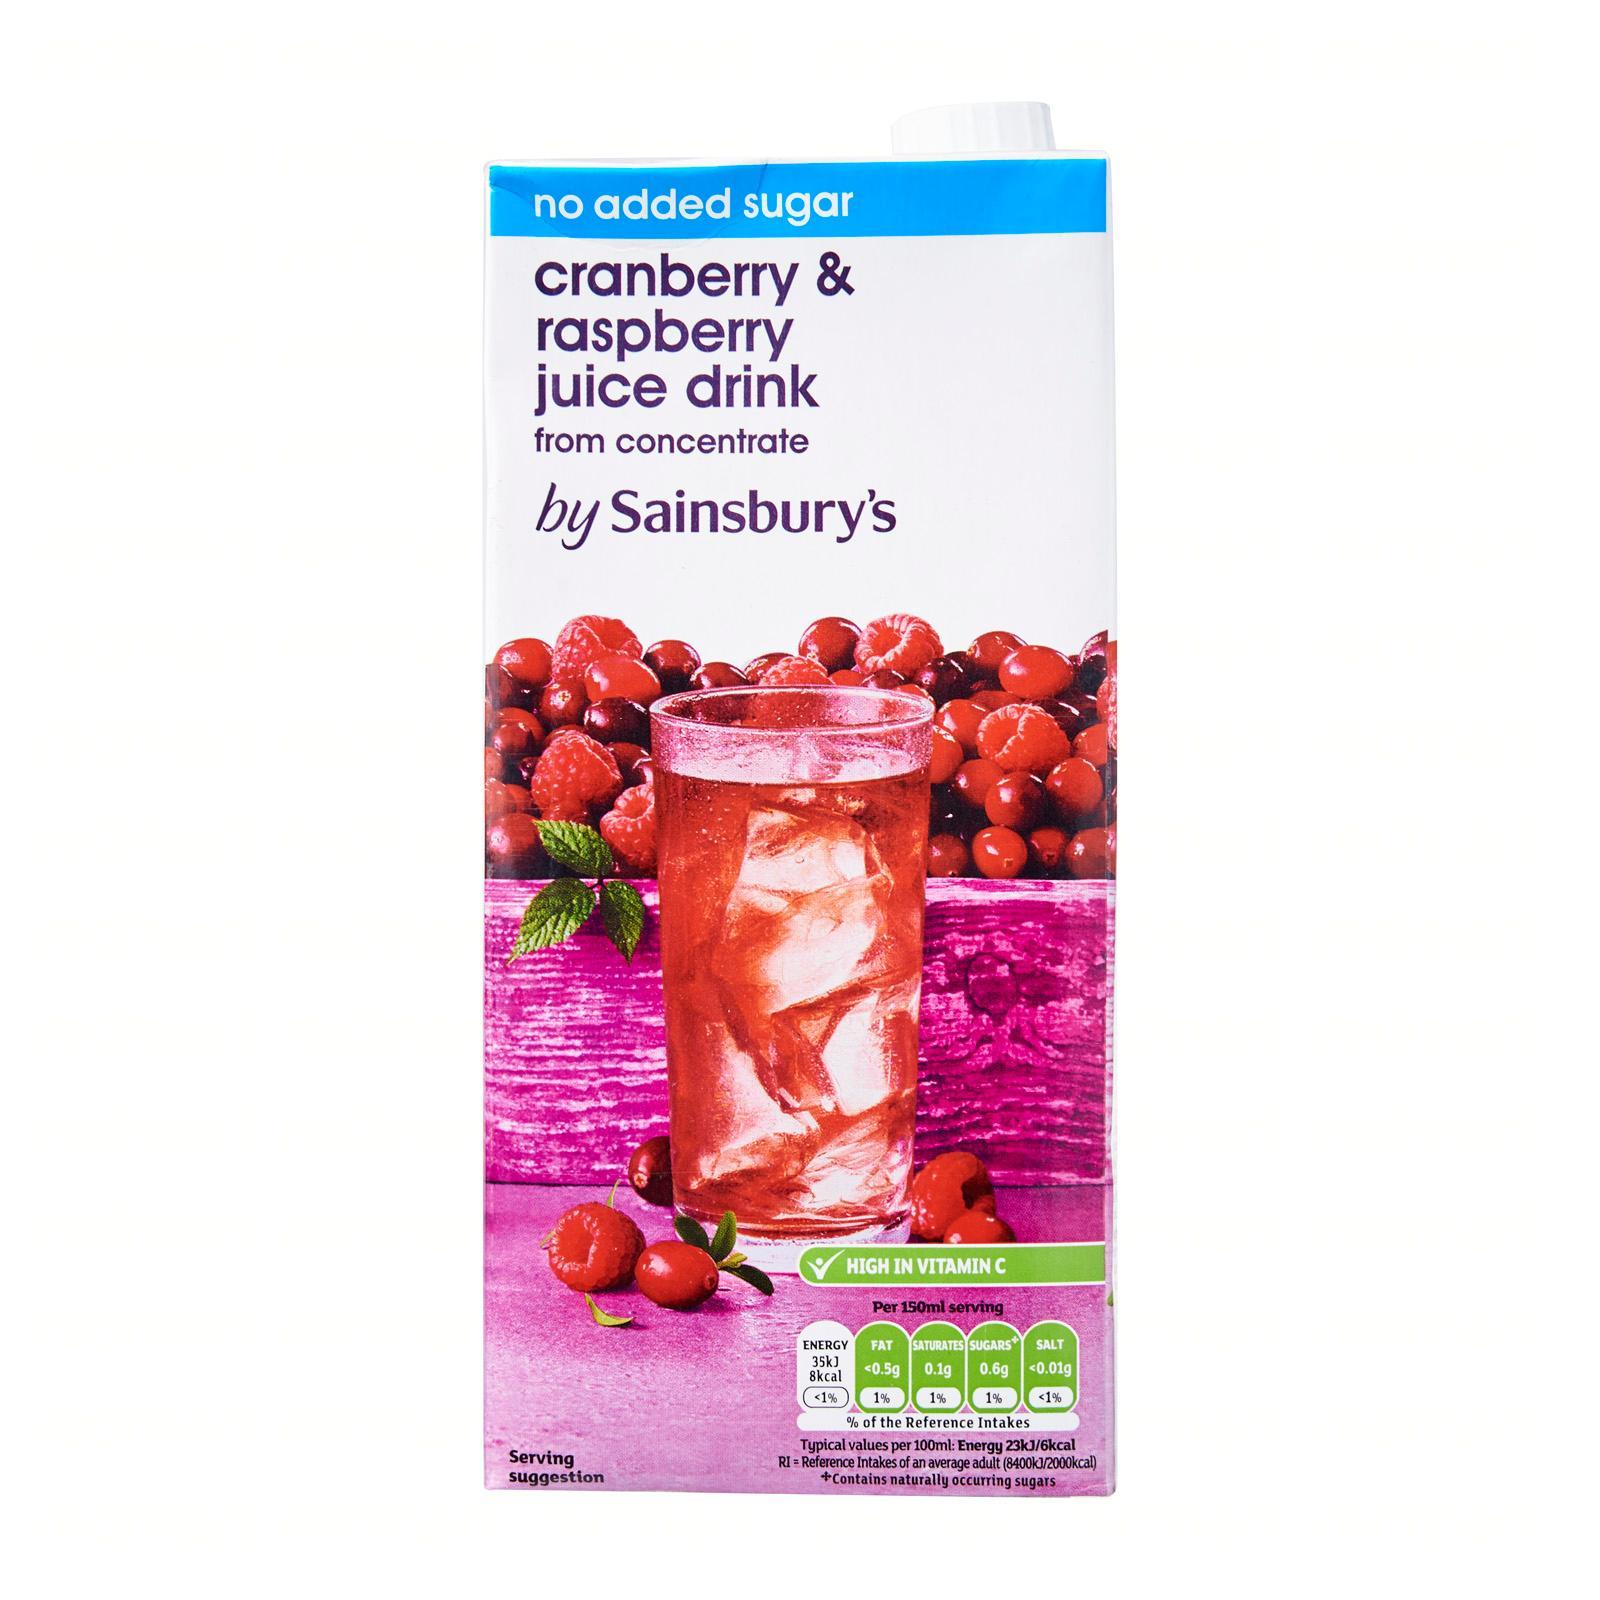 Sainsbury's Cranberry And Raspberry Juice Drink No Added Sugar